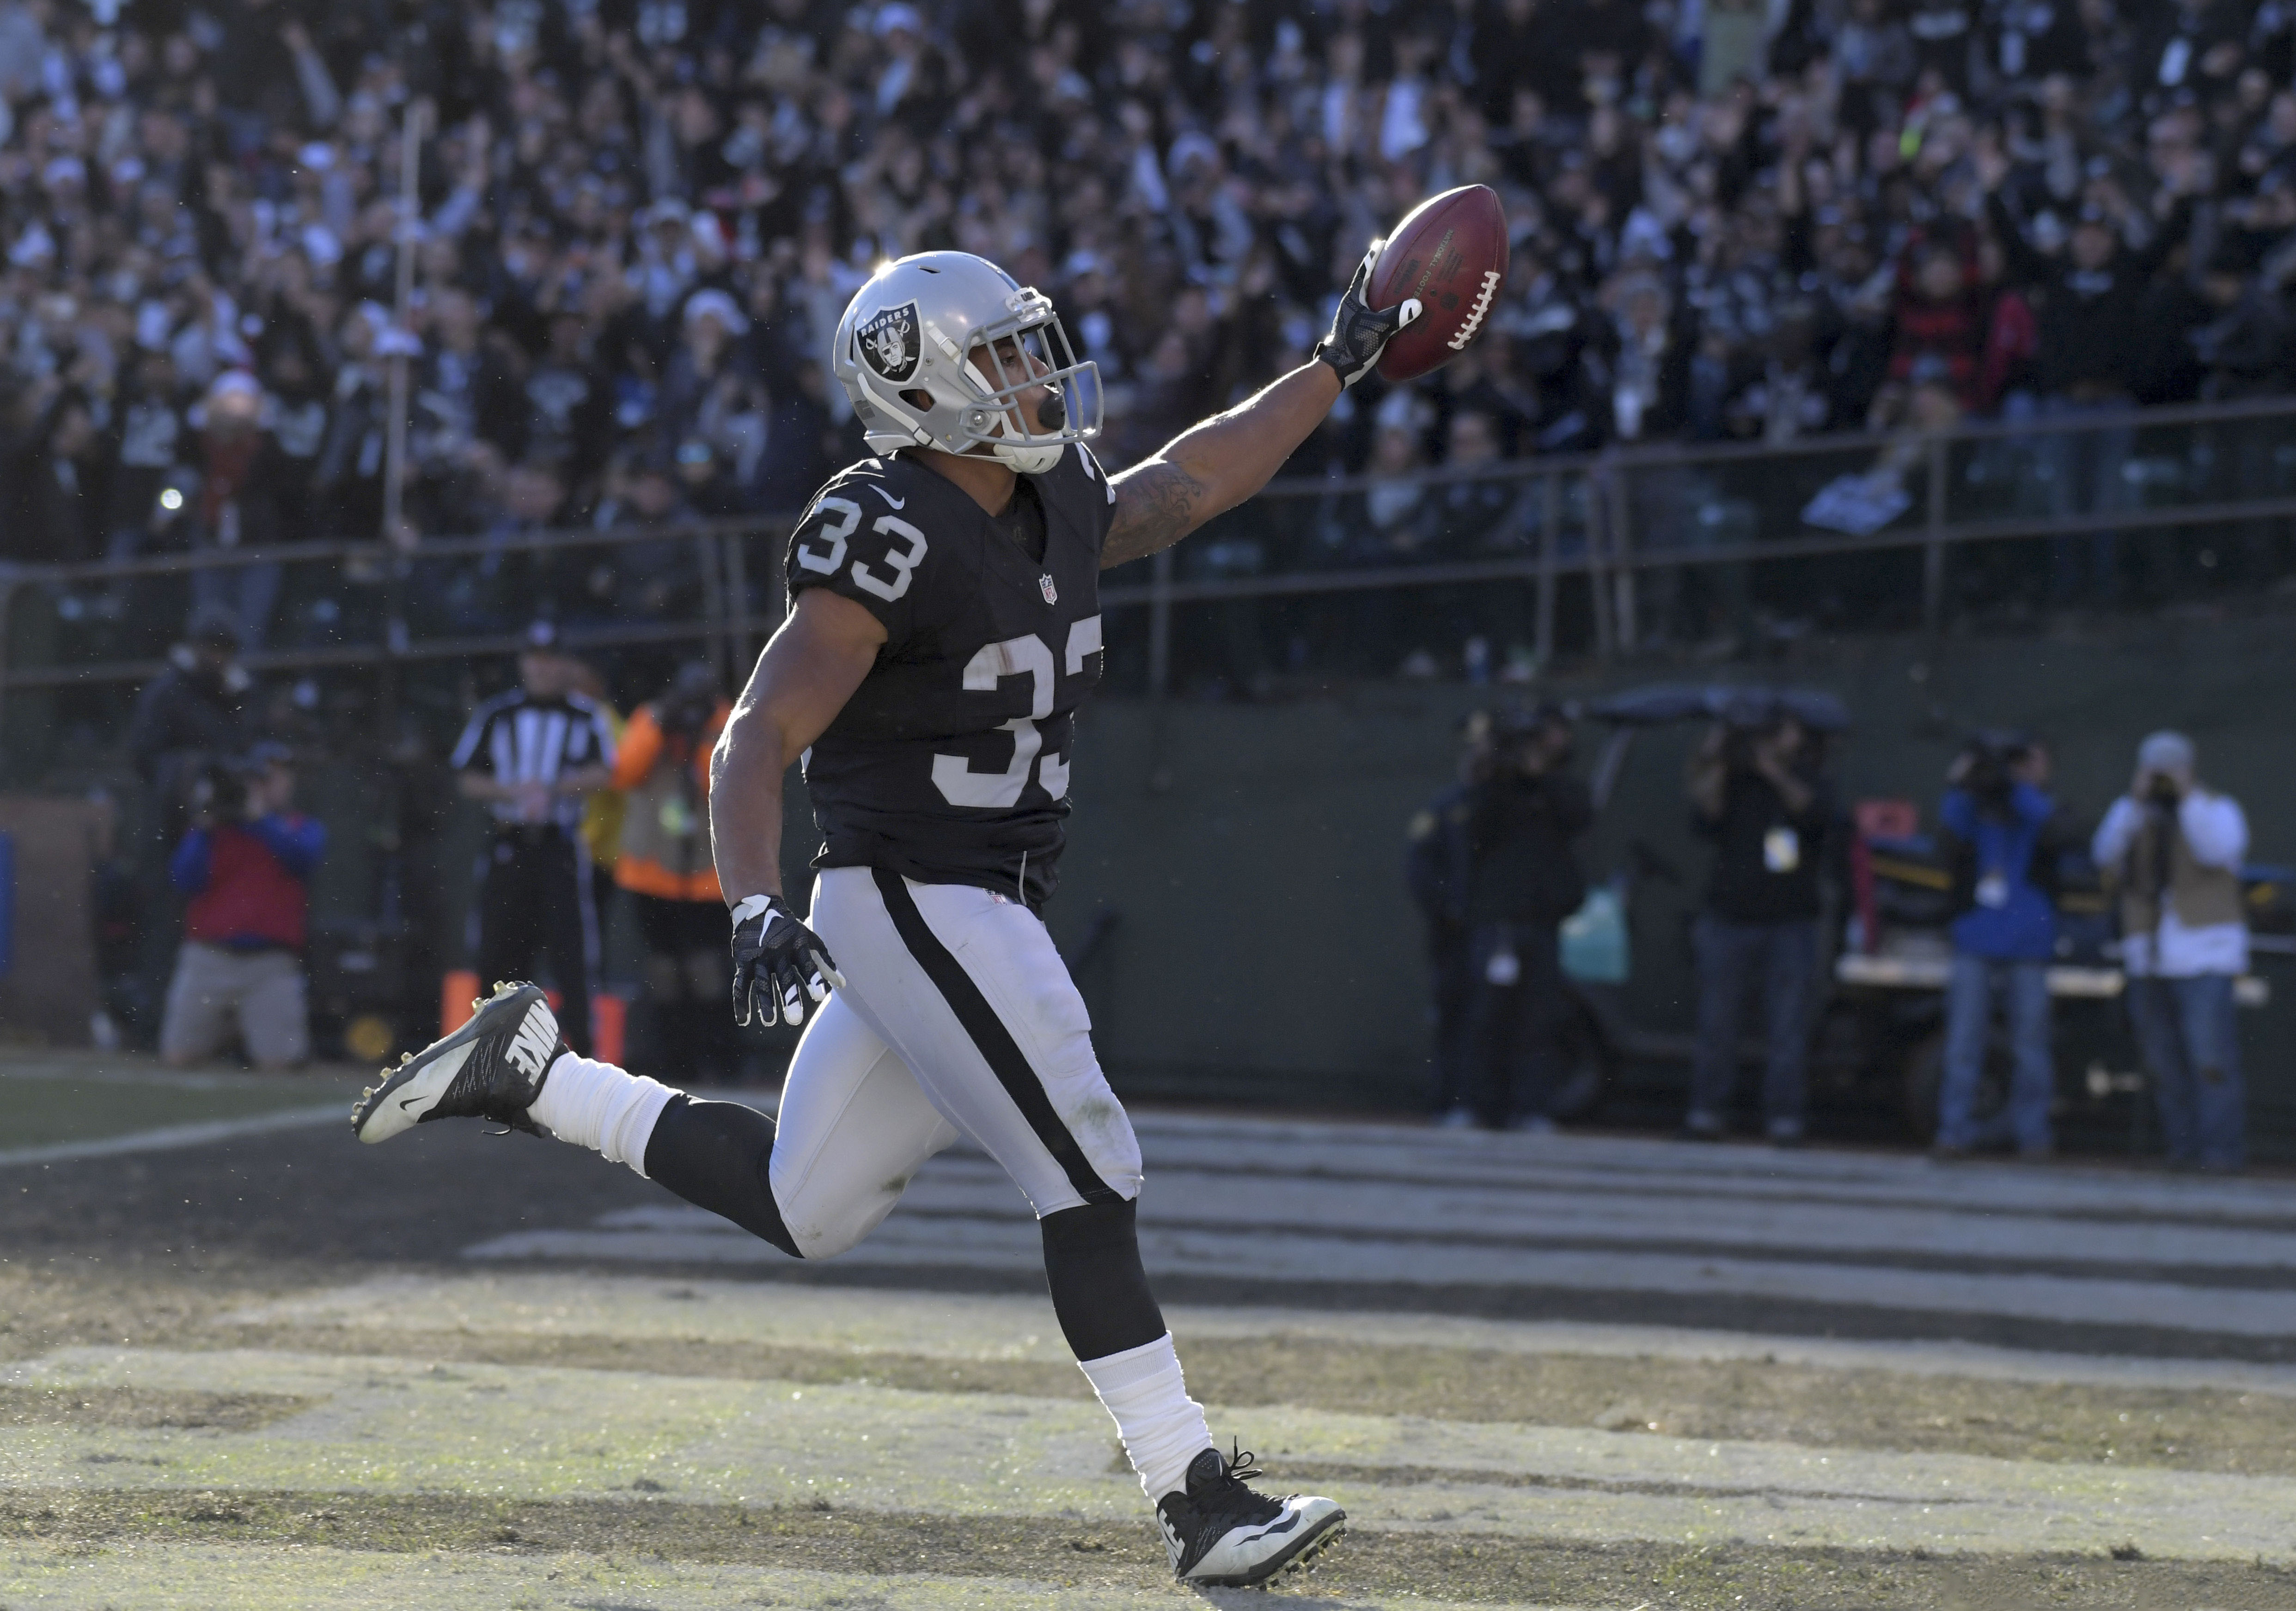 NFL: Indianapolis Colts at Oakland Raiders